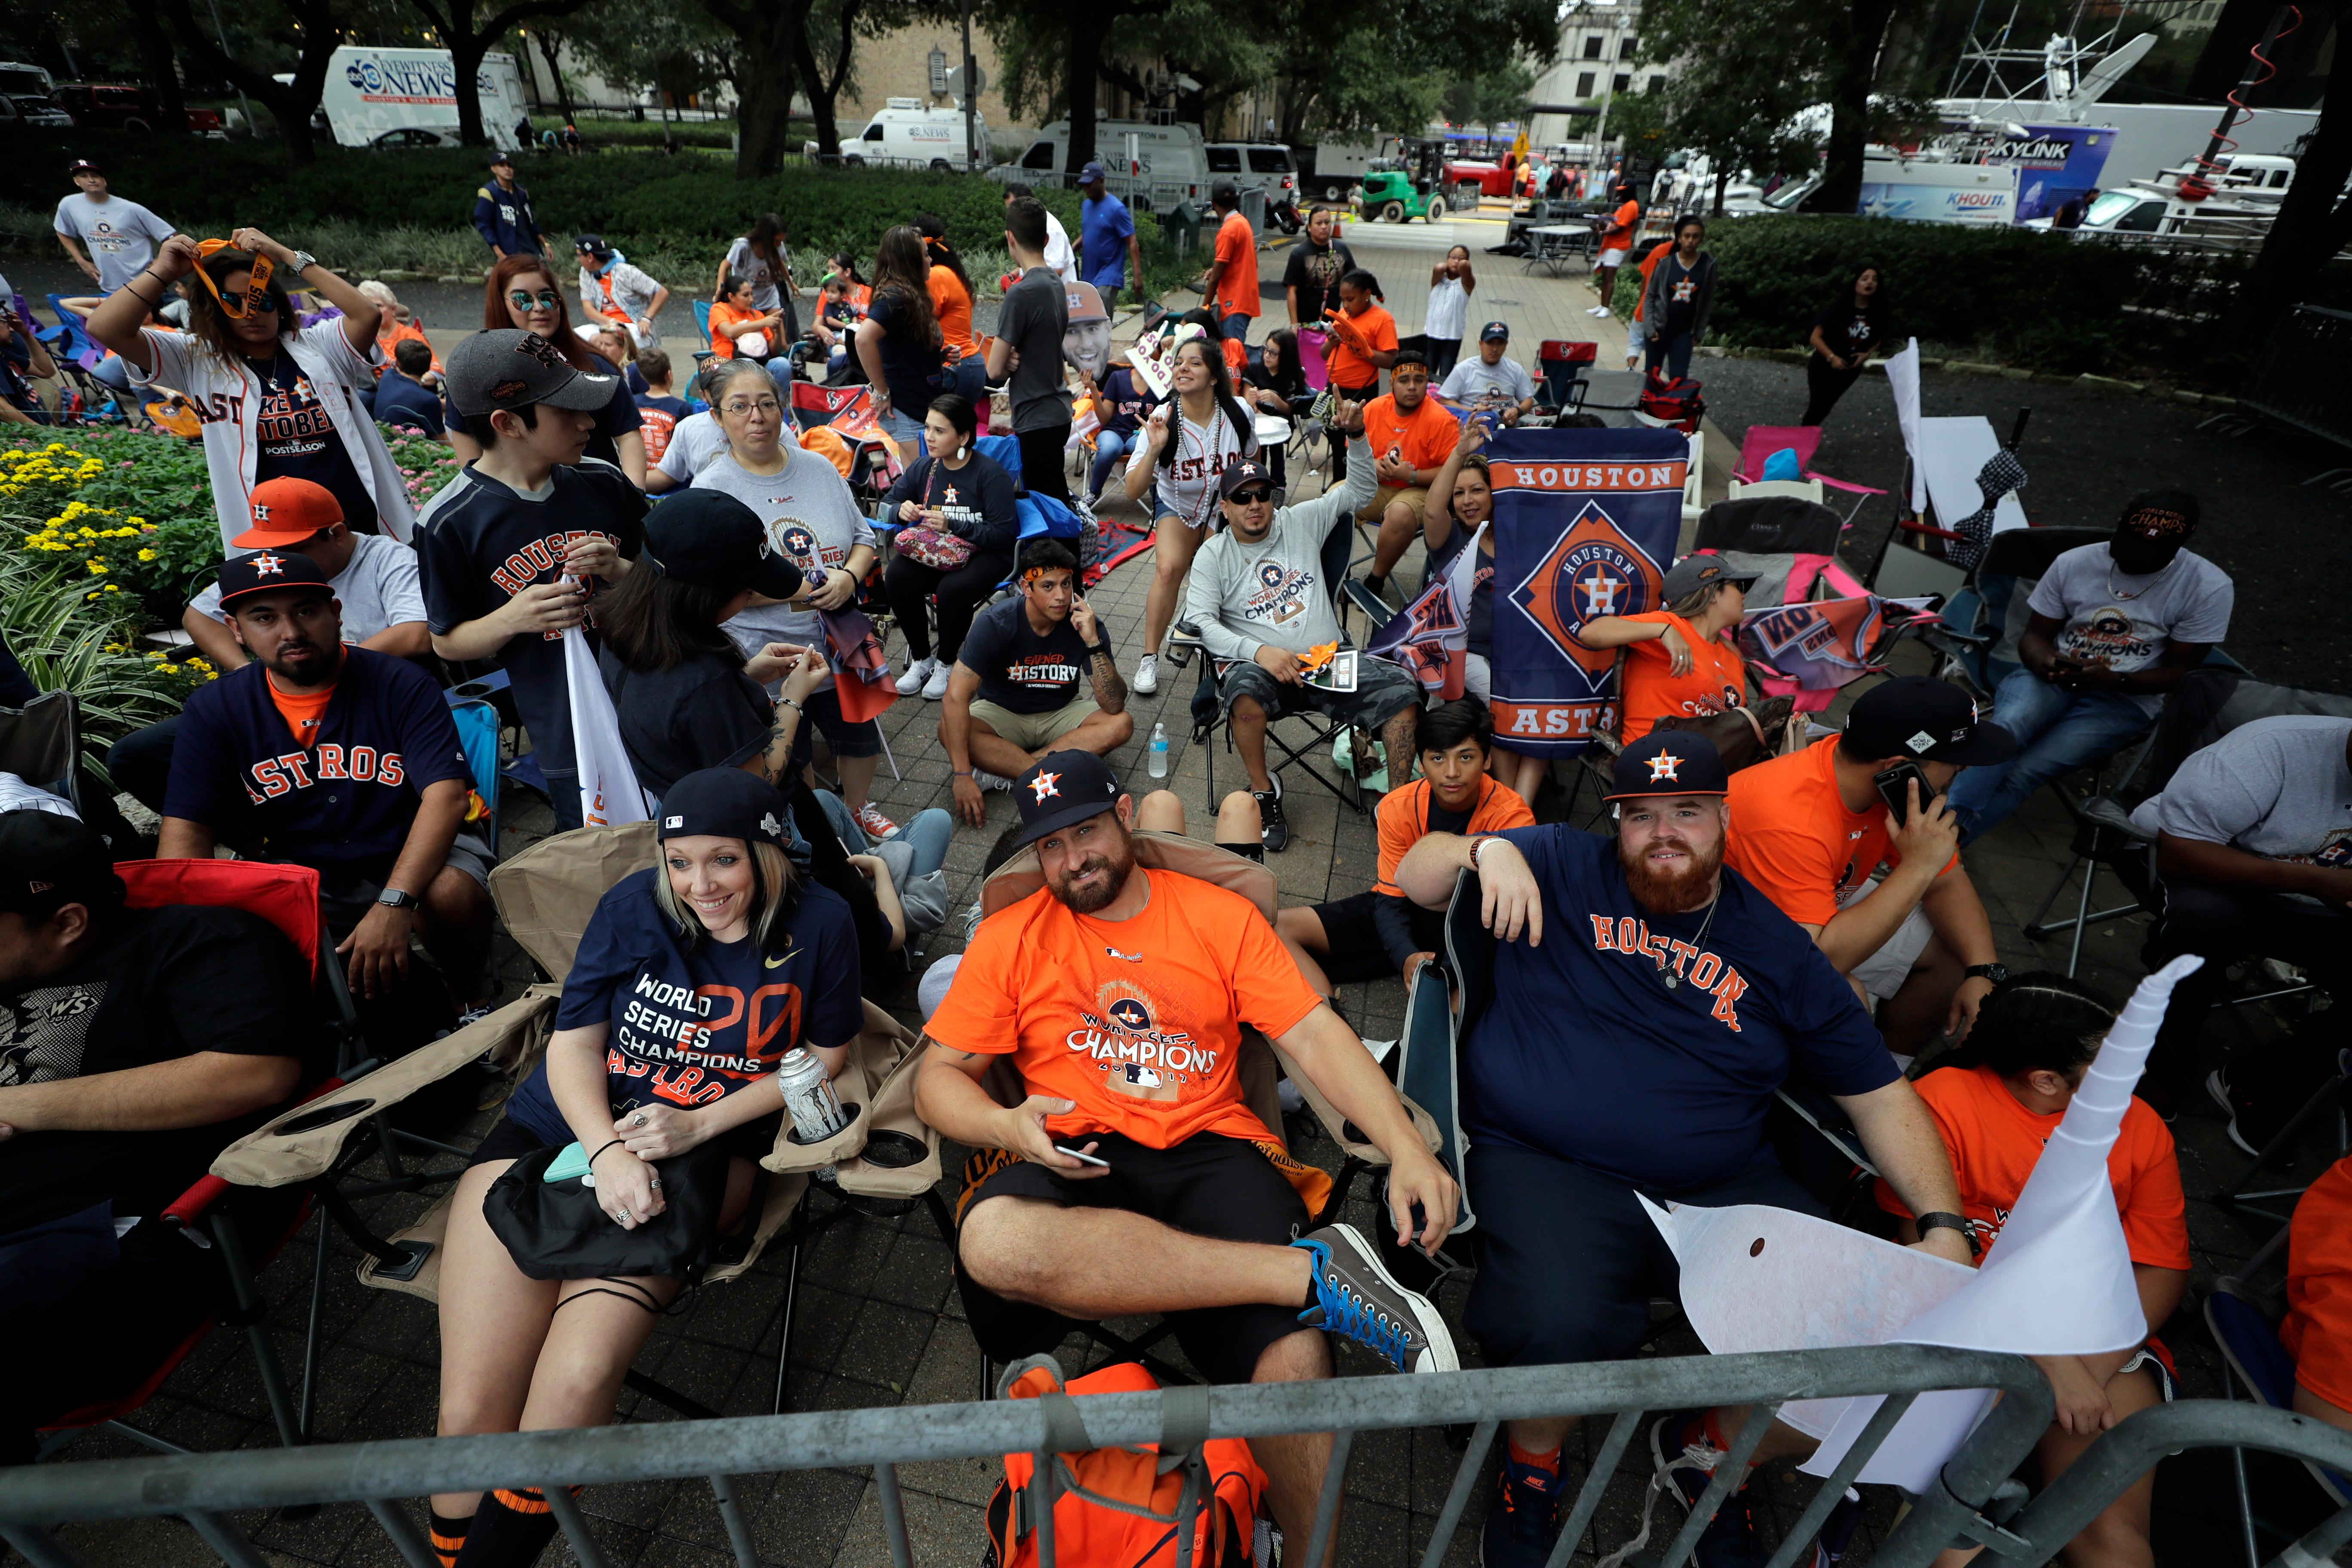 Houston Astros fans gather before a parade honoring the World Series baseball champions, Friday, Nov. 3, 2017, in Houston. (AP Photo/David J. Phillip)